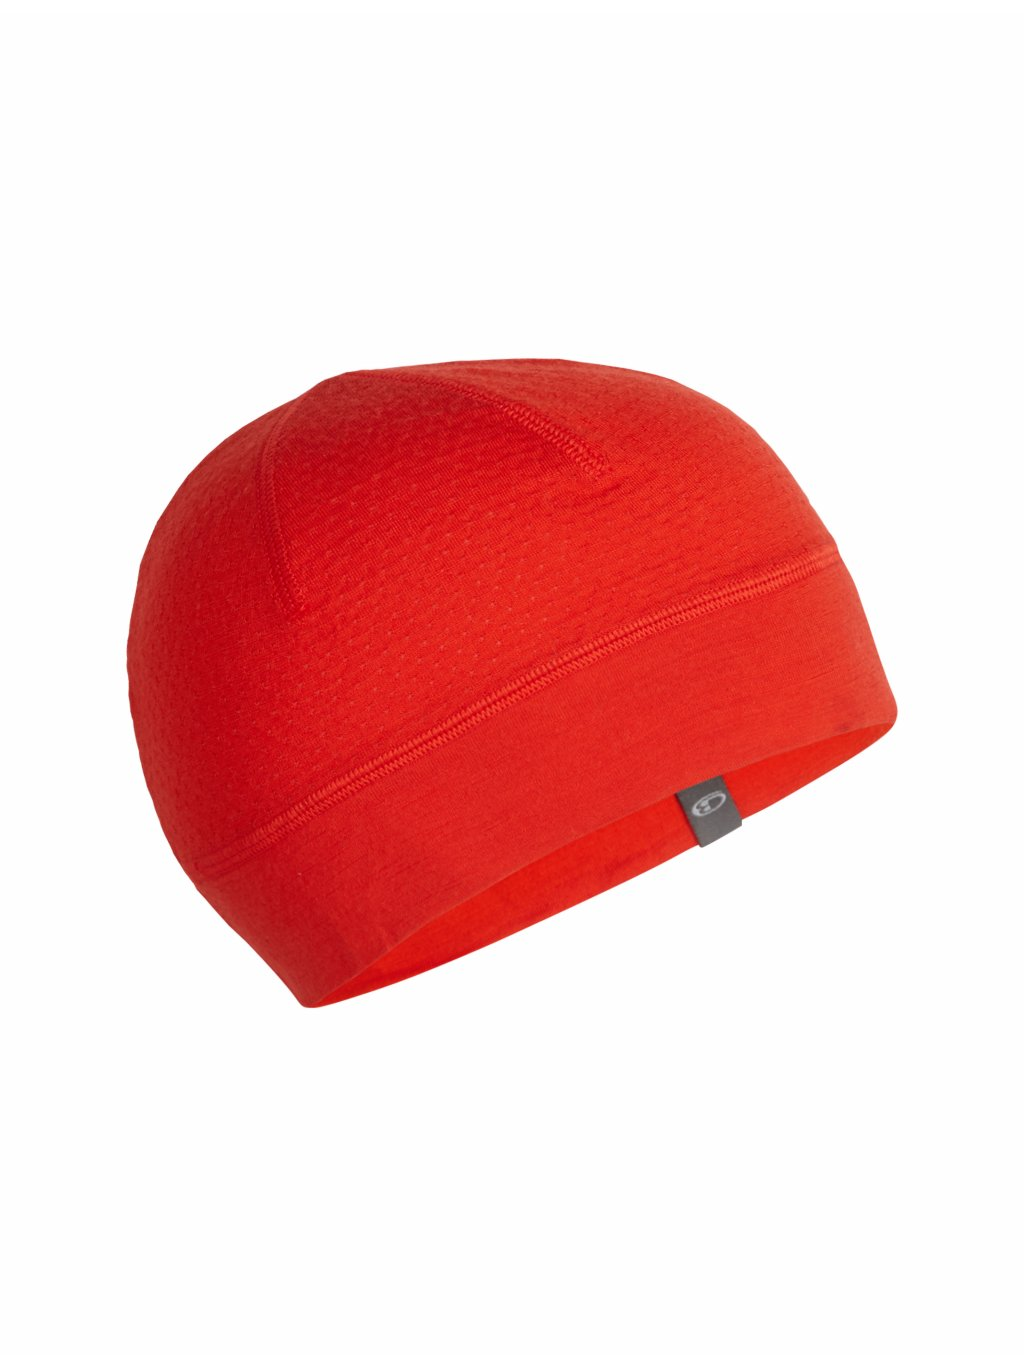 c0a64a2e57c ICEBREAKER Adult 200 Zone Beanie - OUTDOOR OUTLETS